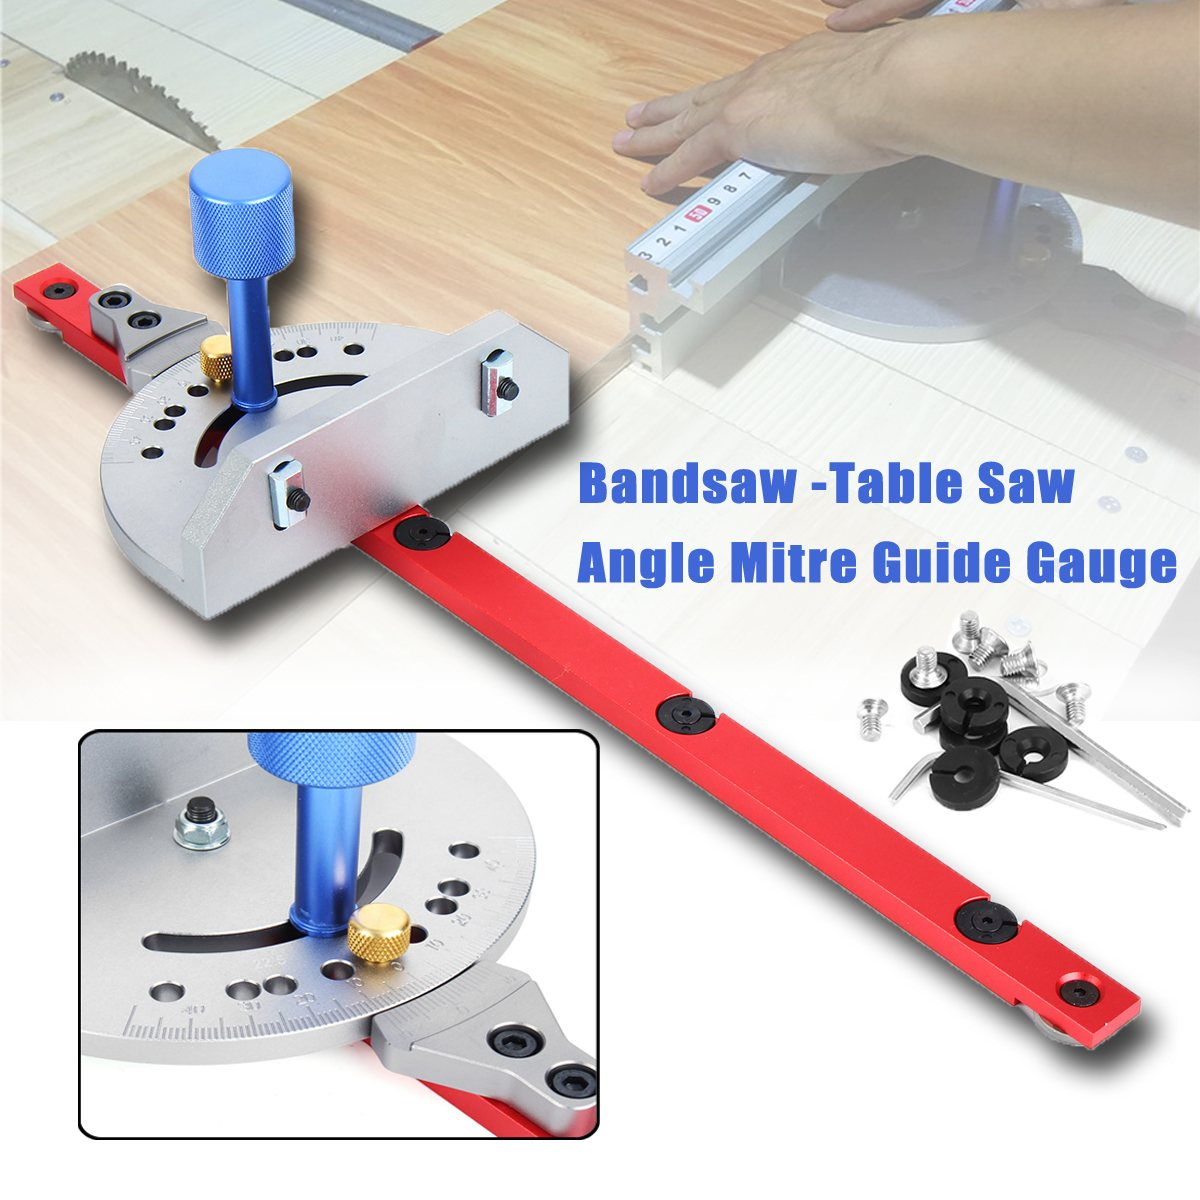 Miter Gauge Wood Working Tool For Bandsaw Table Saw Router Angle Miter Gauge Guide Fence Woodworking Machinery Parts high quality table saw router miter gauge sawing assembly ruler woodworking diy tools